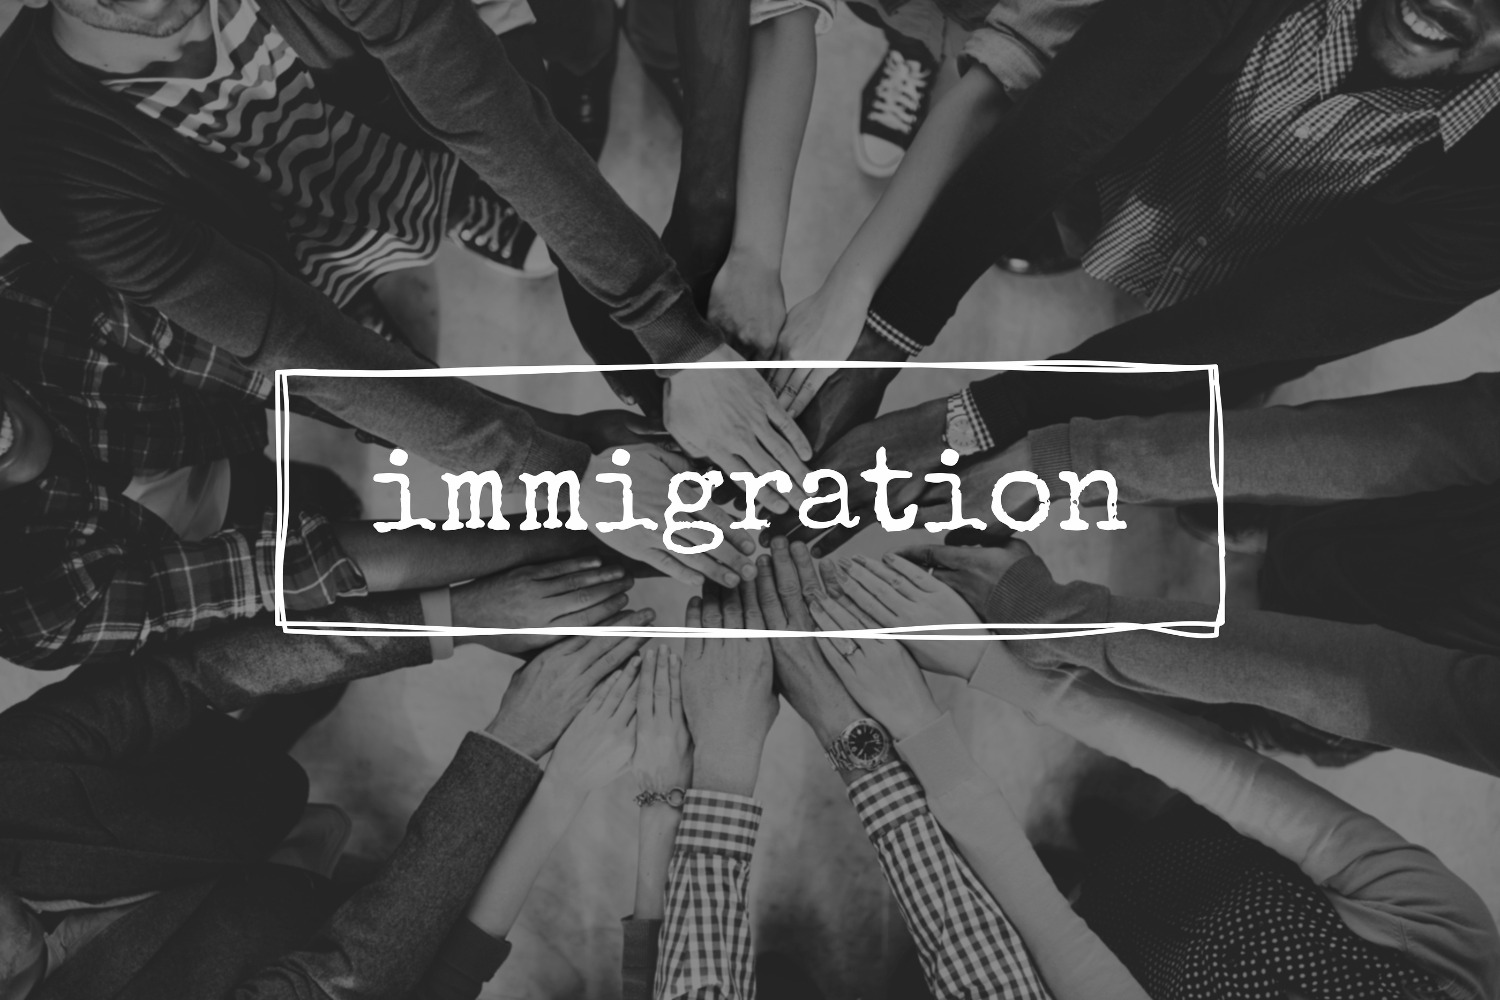 Immigration Immigrants Migrate Move Aboard Concept_edited